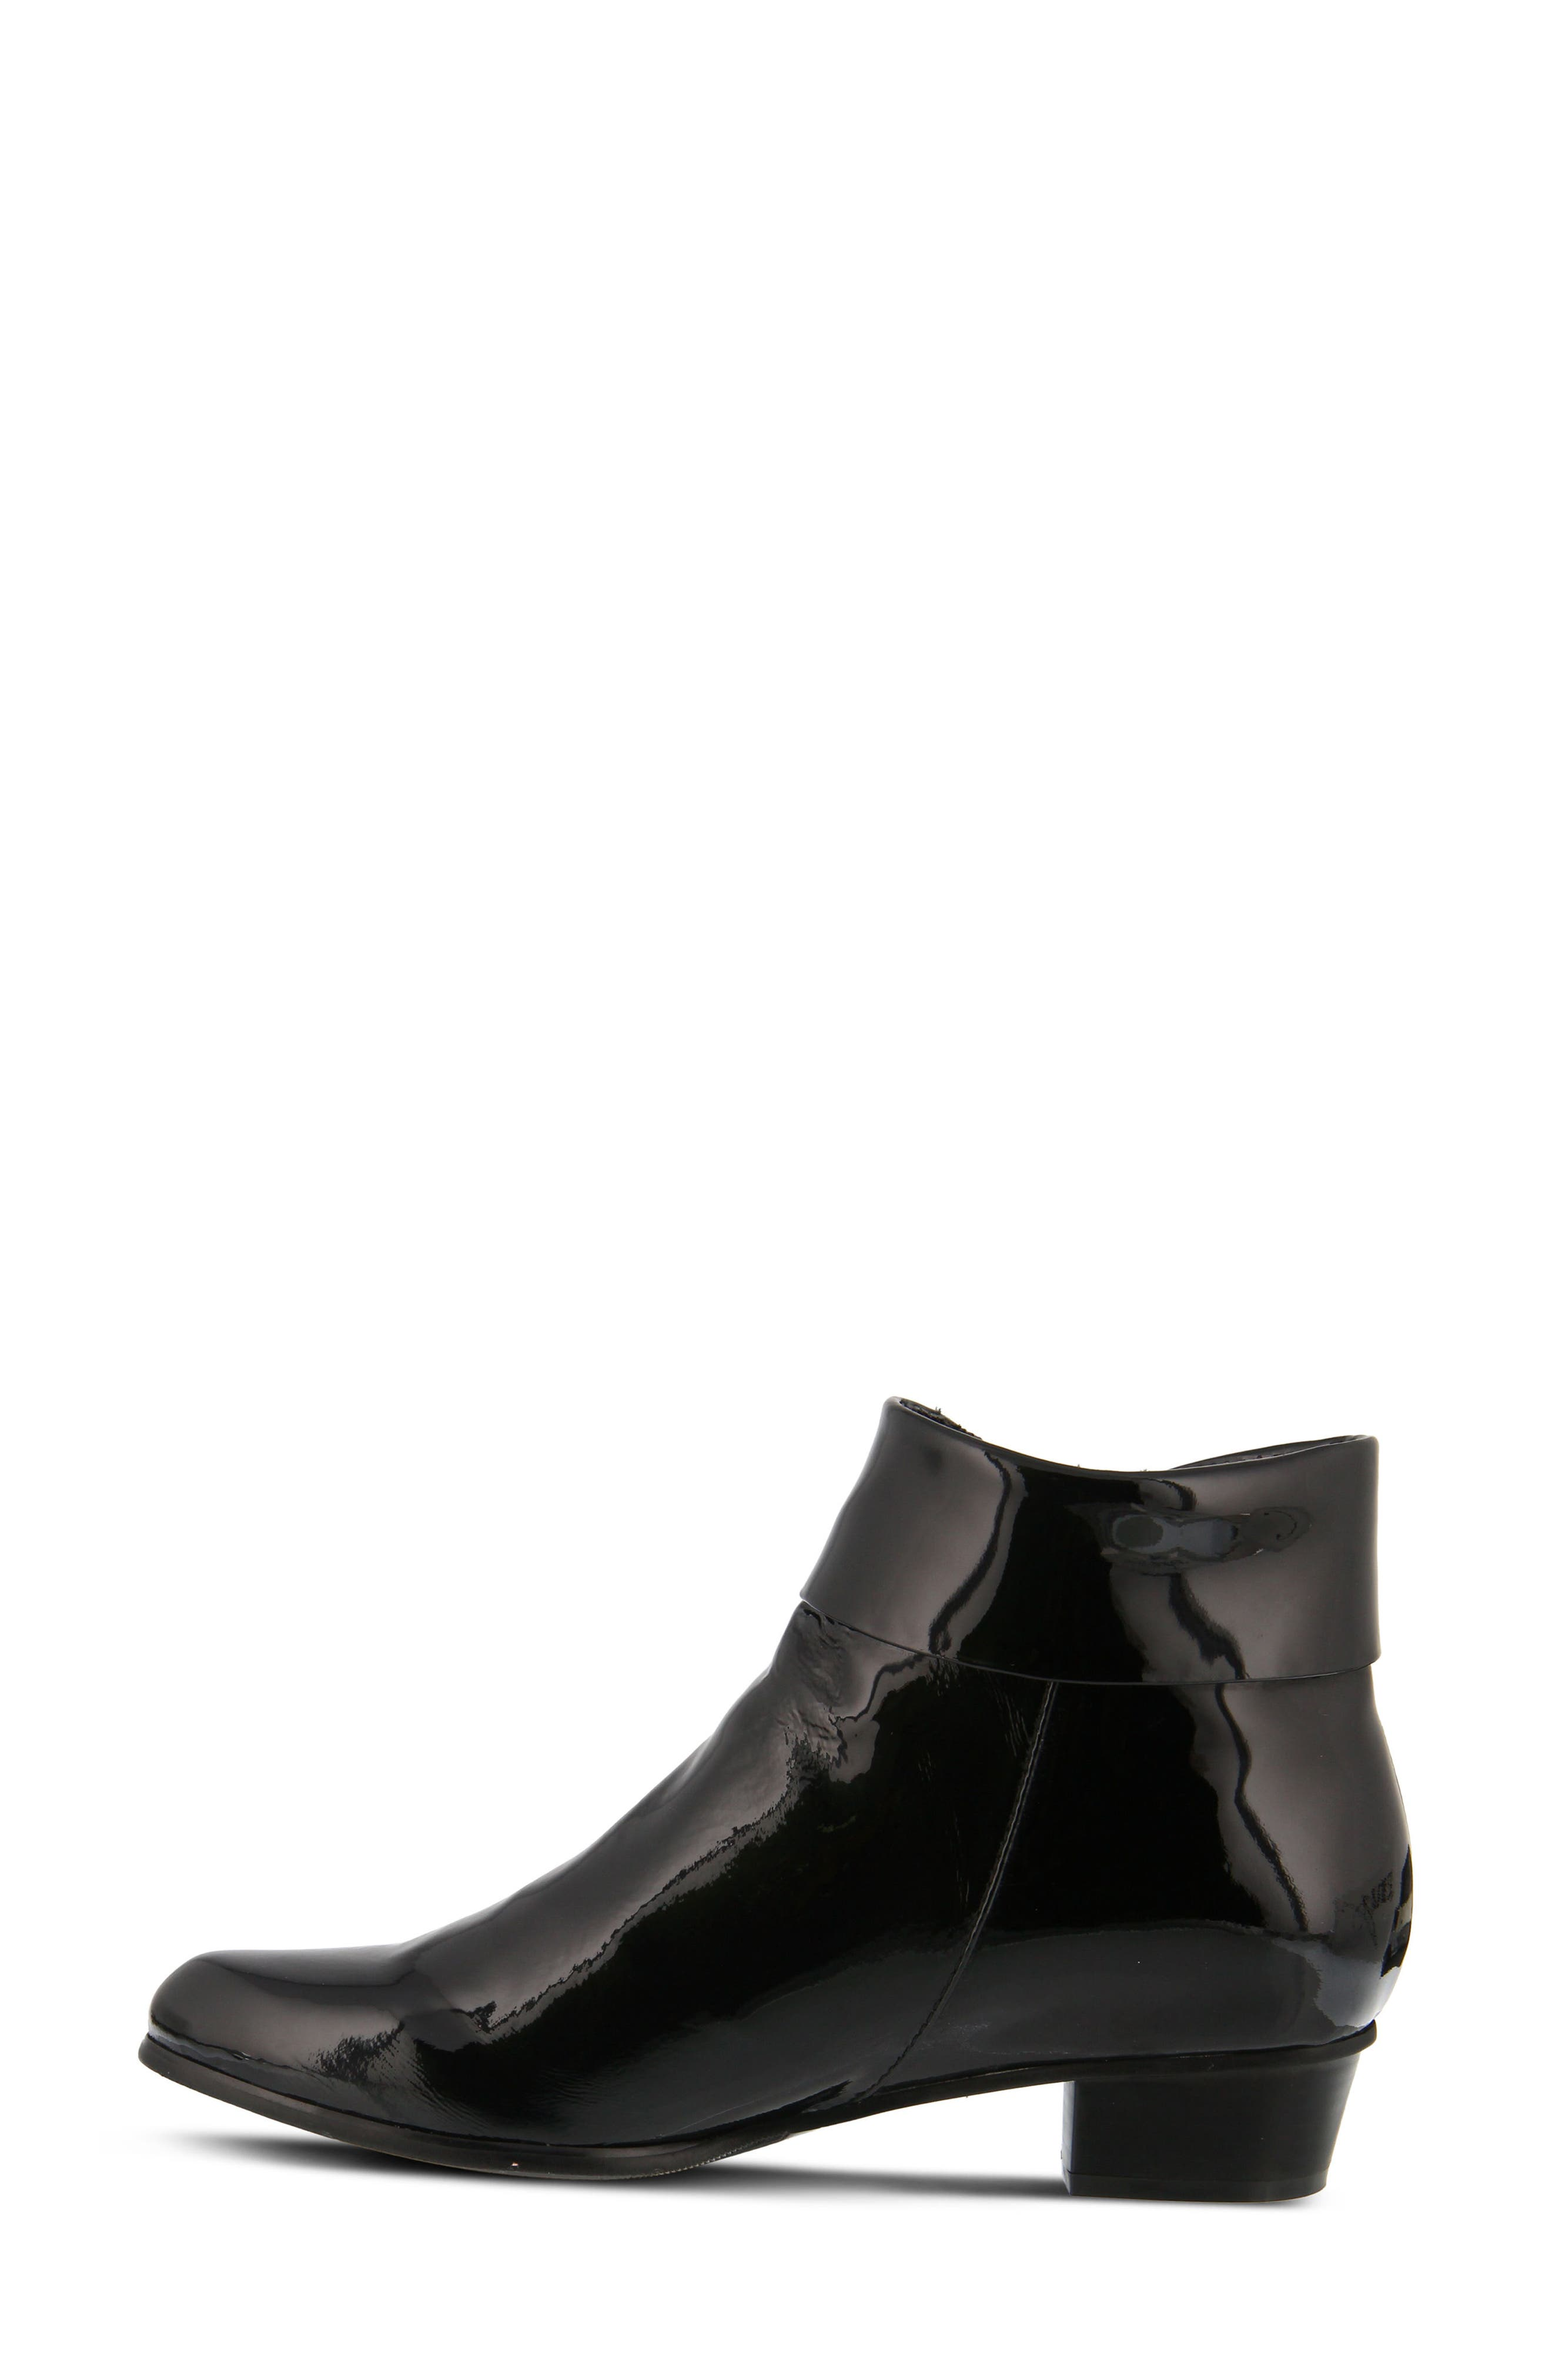 'Stockholm' Boot,                             Alternate thumbnail 4, color,                             Black Patent Leather